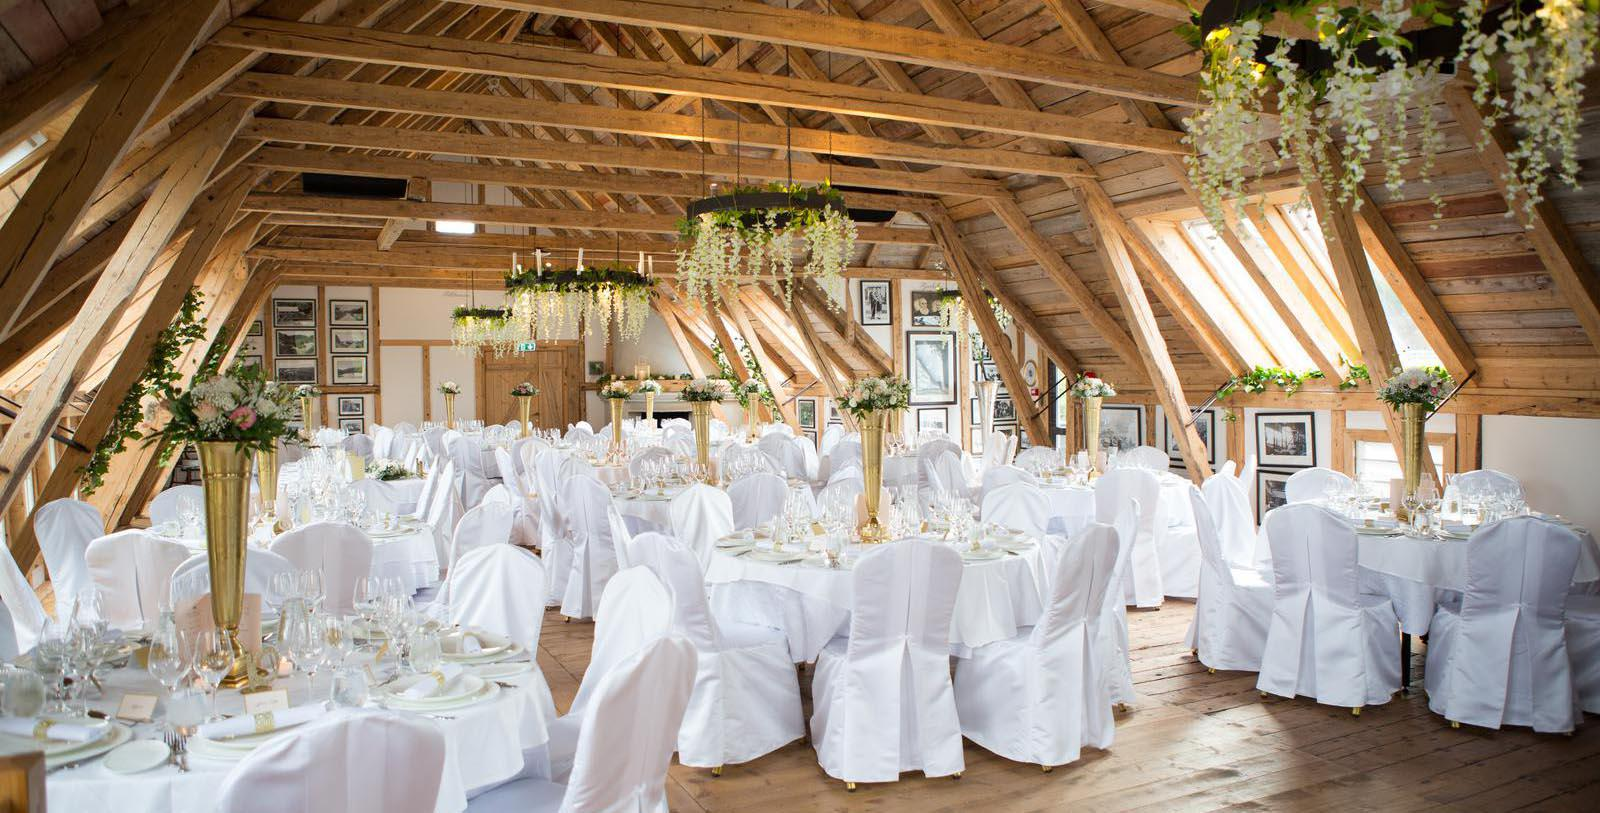 Image of meeting and event space set up for banquet Bekkjarvik Gjestgiveri, 1700s, Member of Historic Hotels Worldwide, in Norway, Experience